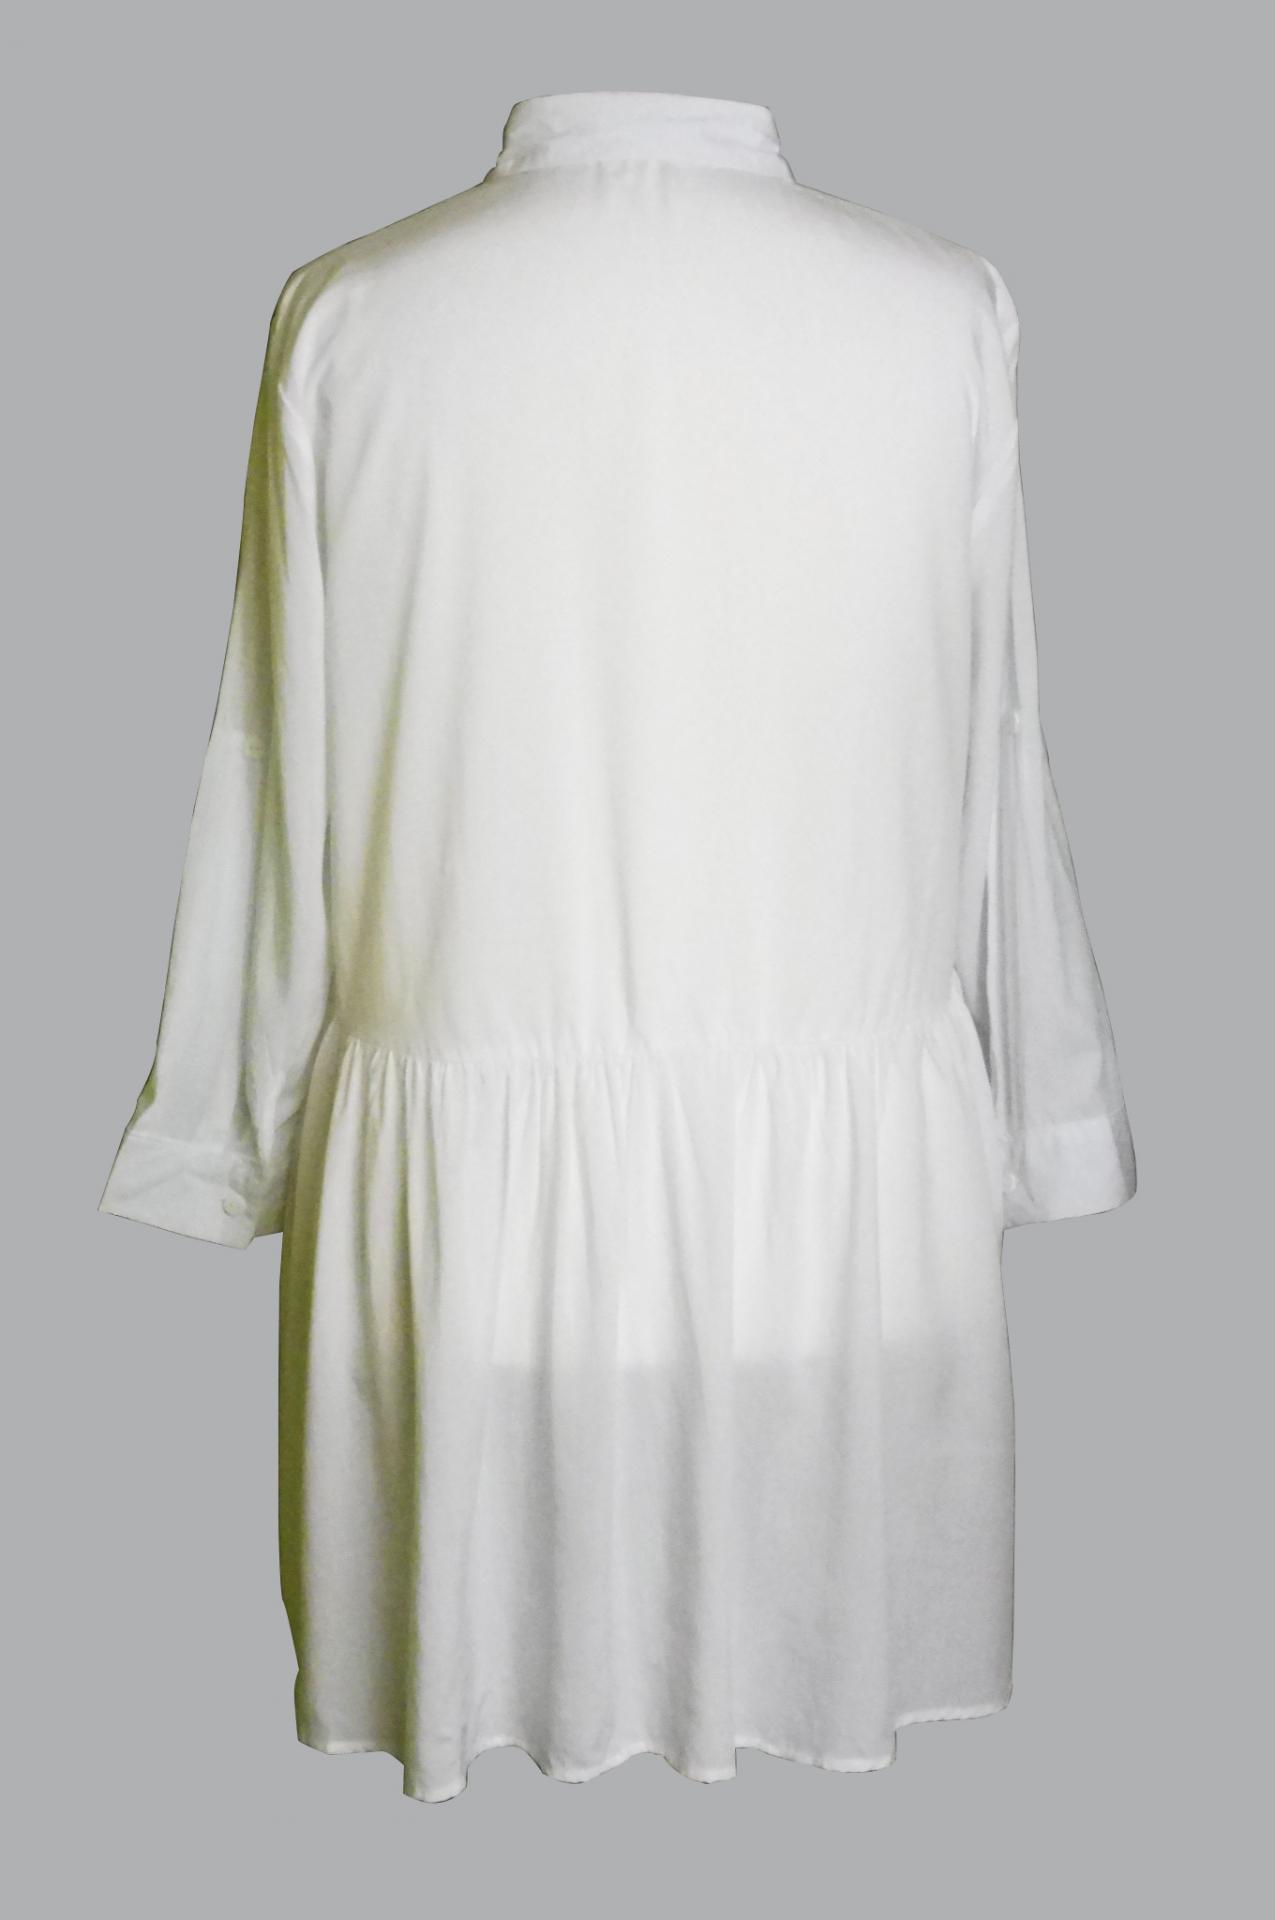 Chemise blanche grande taille